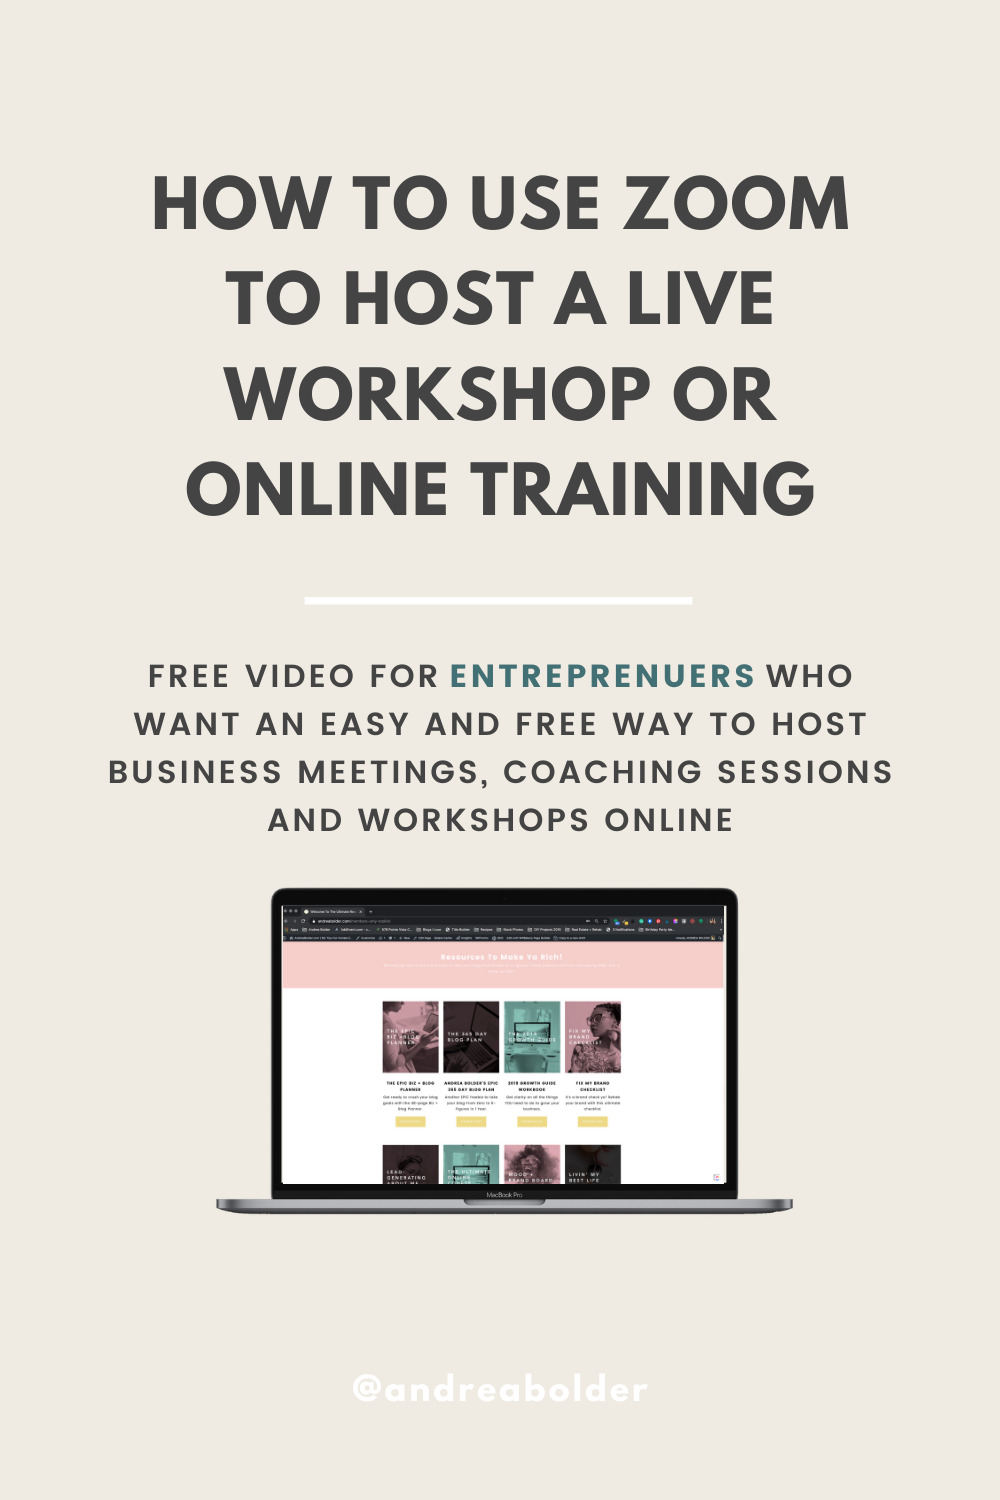 How To Host A Live Online Workshop Or Training With Zoom Andreabolder Com Biz Tips For Female Entrepreneurs Online Workshop Training Tutorial Online